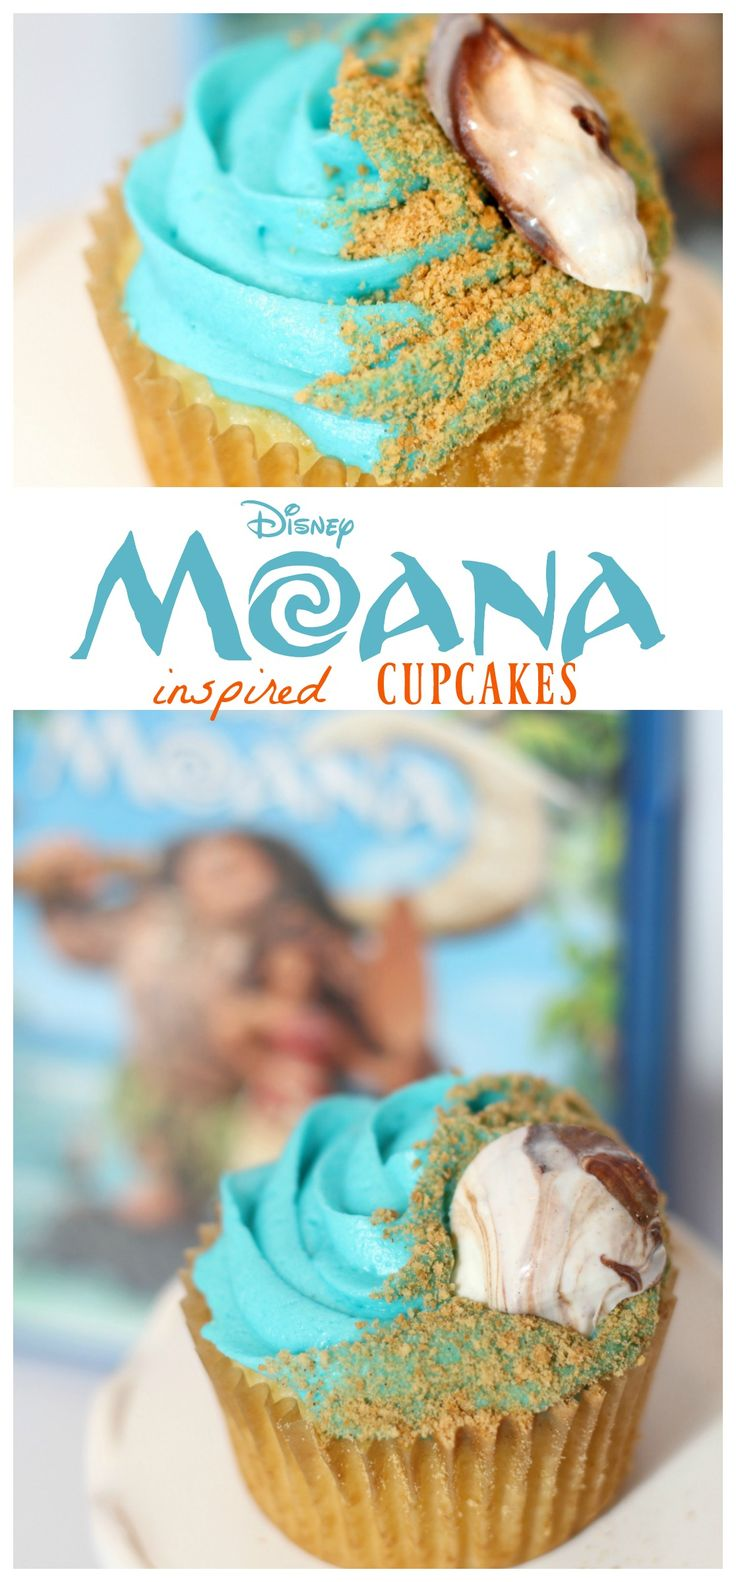 Celebrate the release of #Moana on Blu-ray with these Moana Inspired Cupcakes